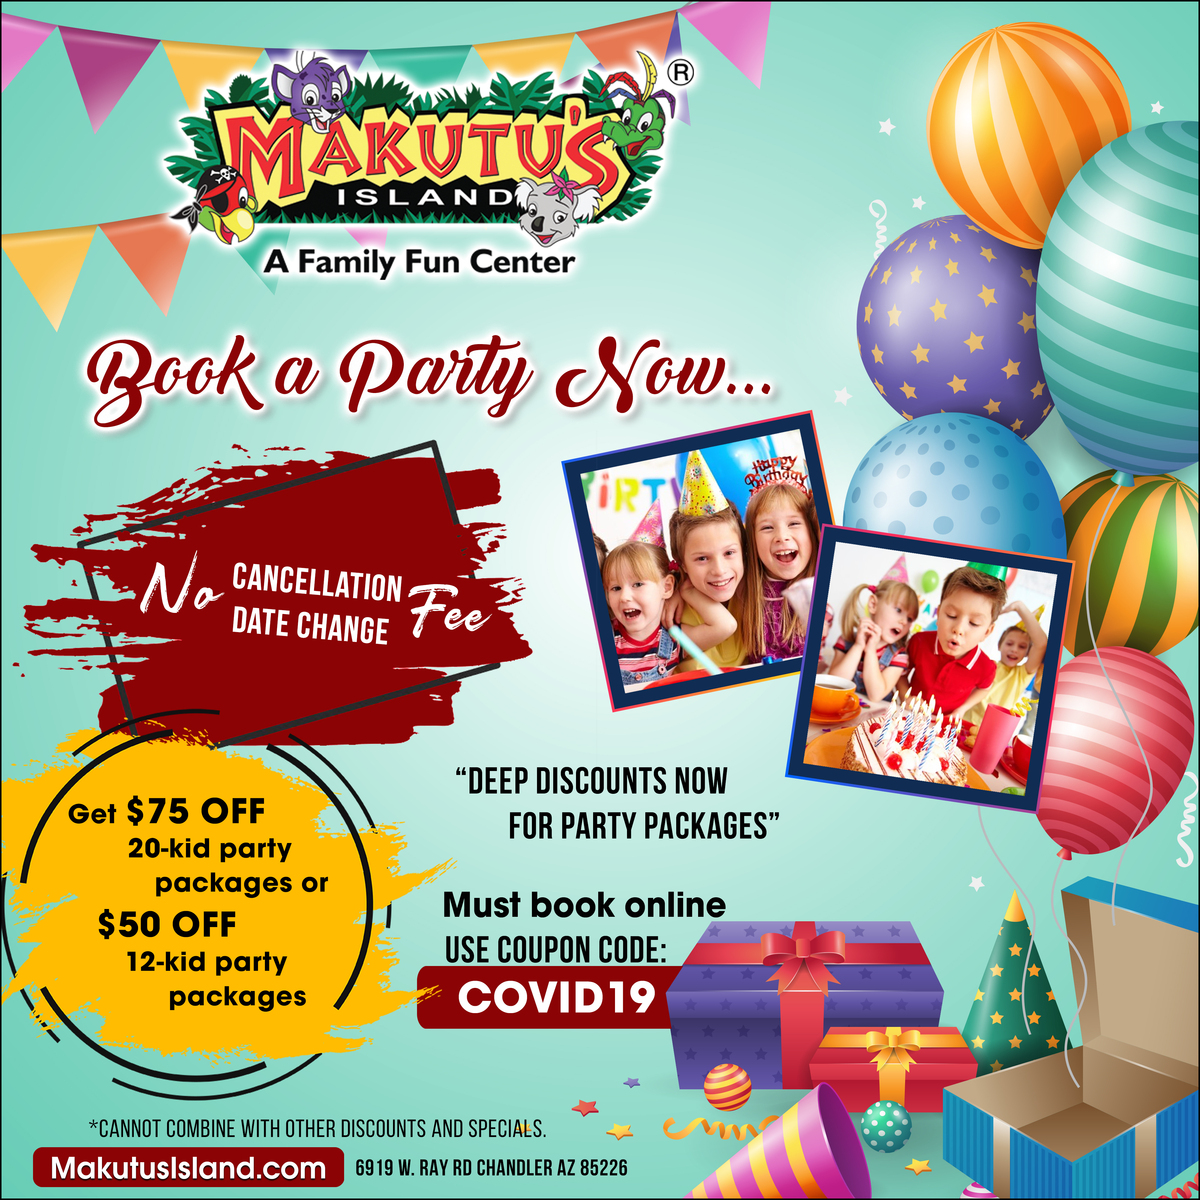 Book a birthday party now at Makutu's Island Chandler. Get $75 off on 25 kids party package or $50 off on 12 kids party packages. Must Book Online Use Code - COVID19 Visit http://MakutusIsland.com #makutusisland #Funtasticpass #funcenter #kidsplay #attractions #adventurespic.twitter.com/UVrG3gPiLm